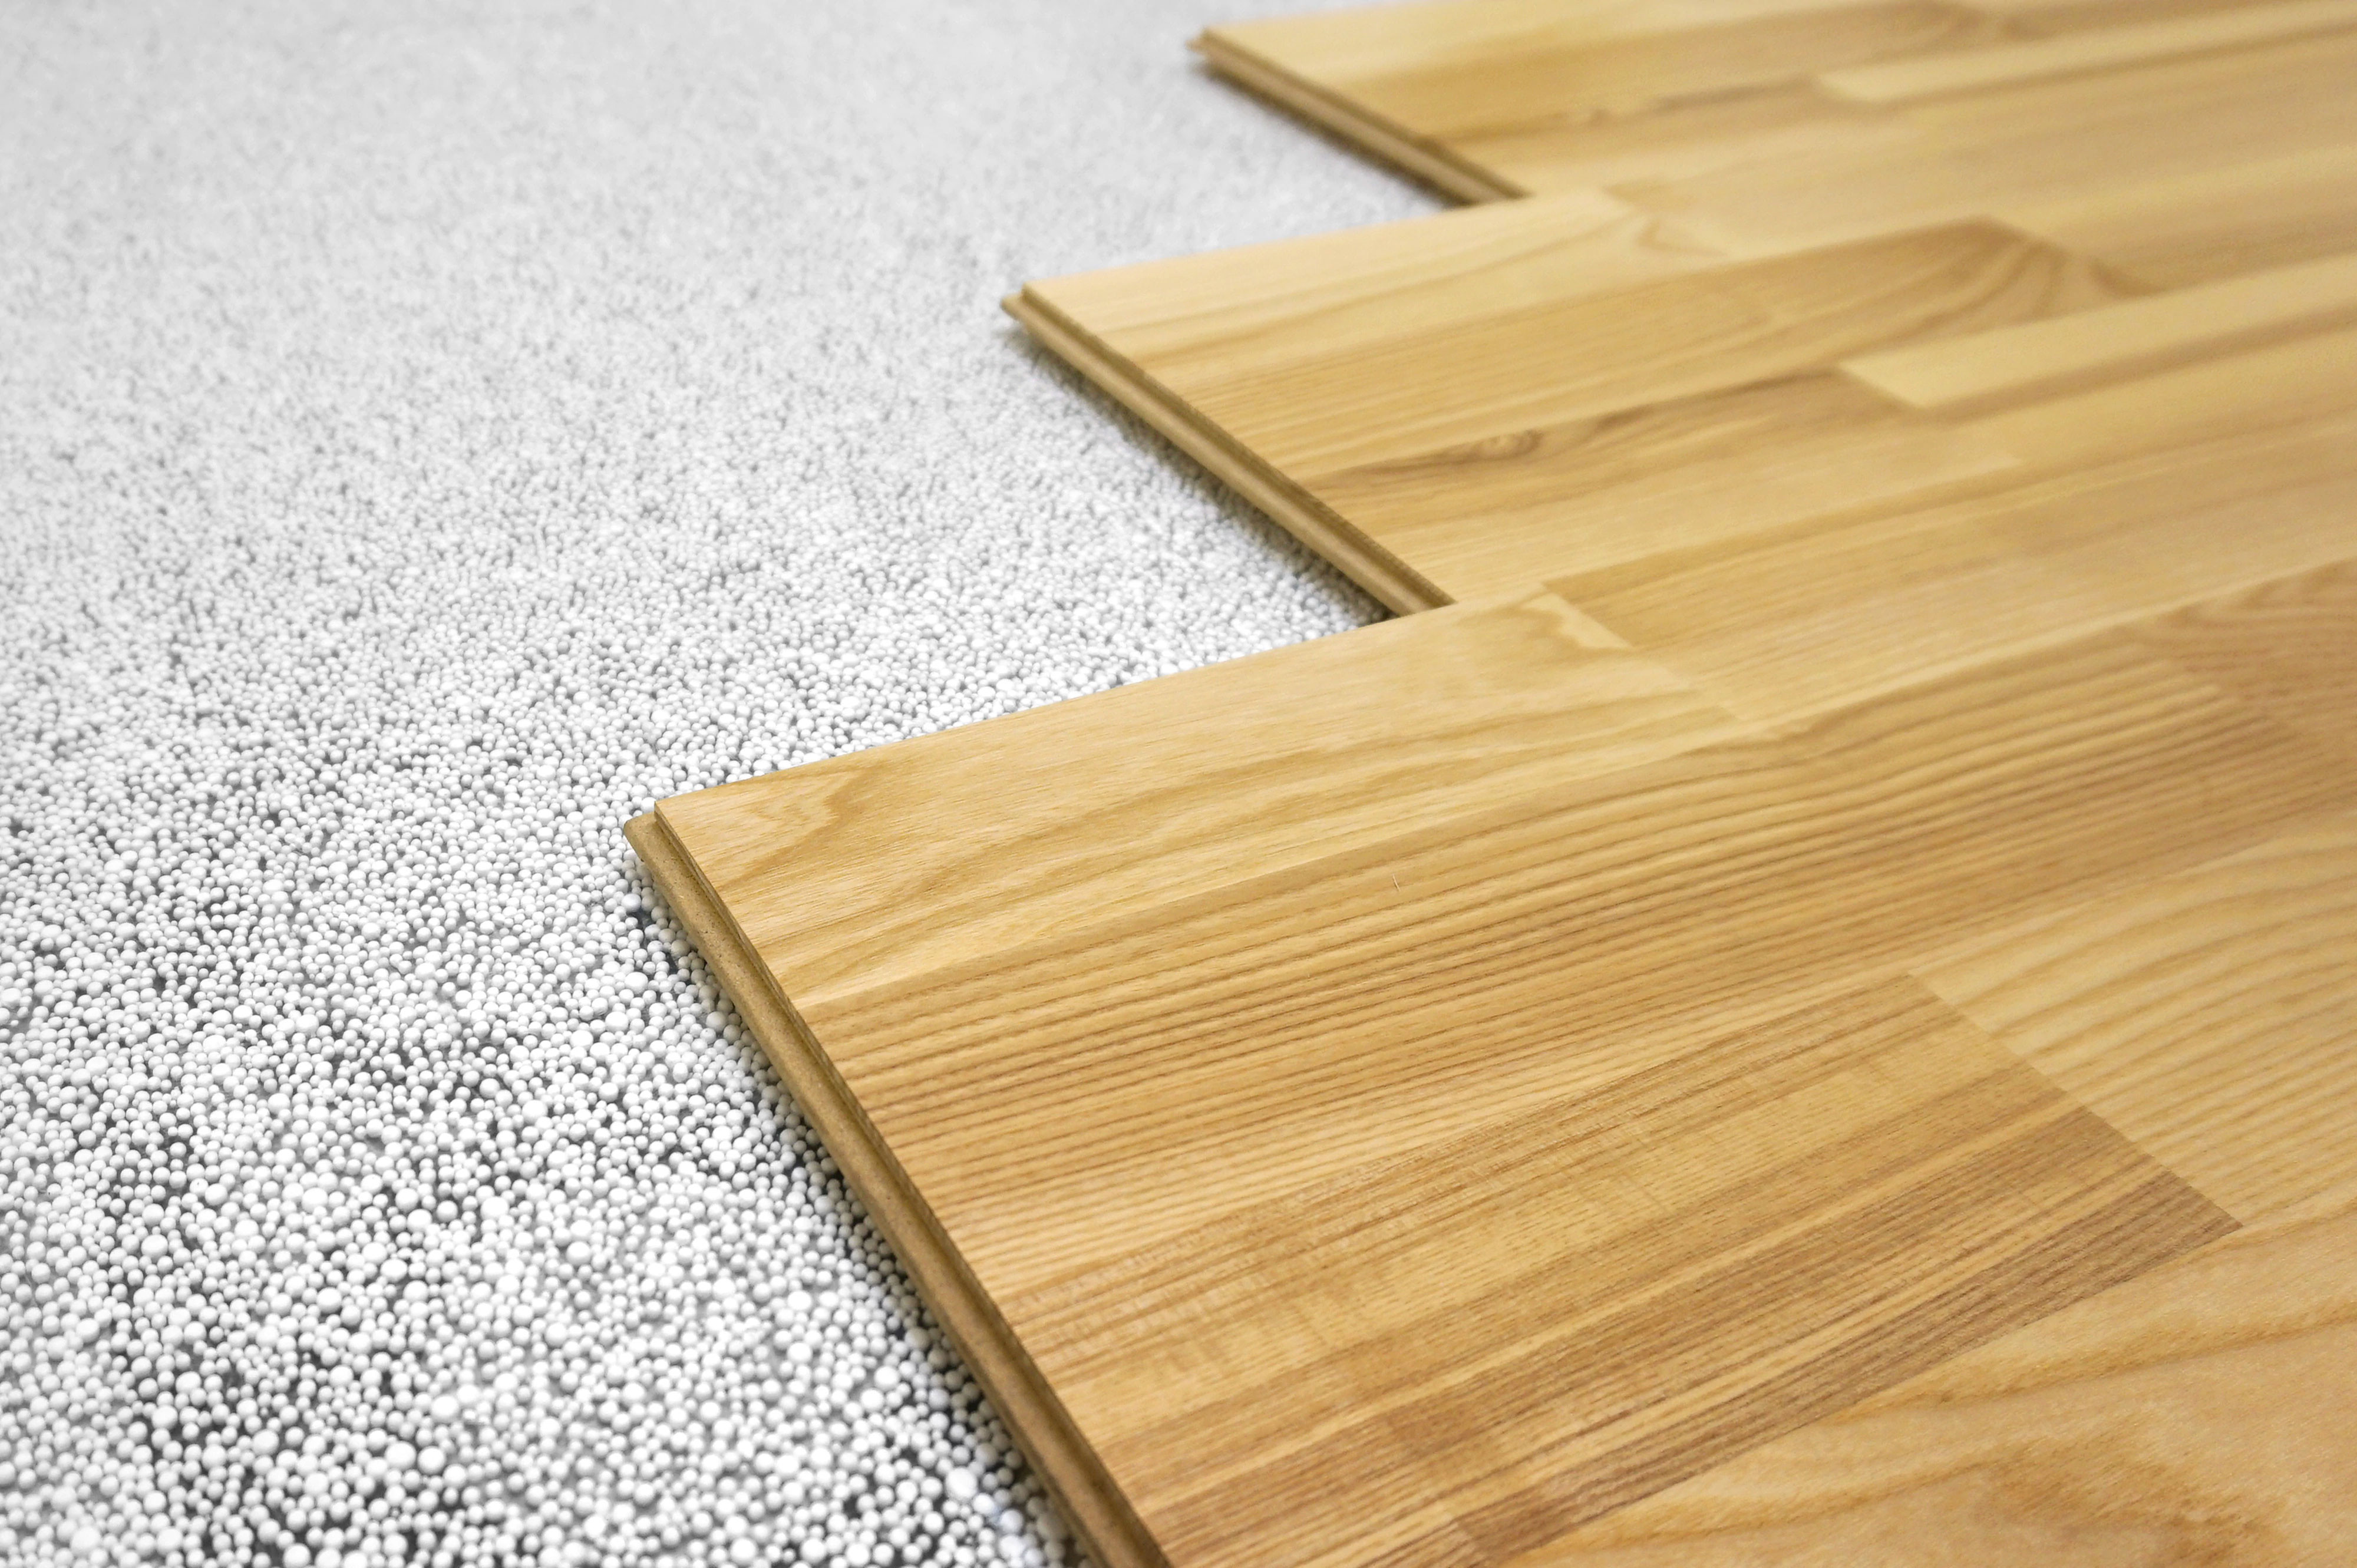 hardwood flooring in ontario california of what does it cost to install laminate flooring angies list with wood lam